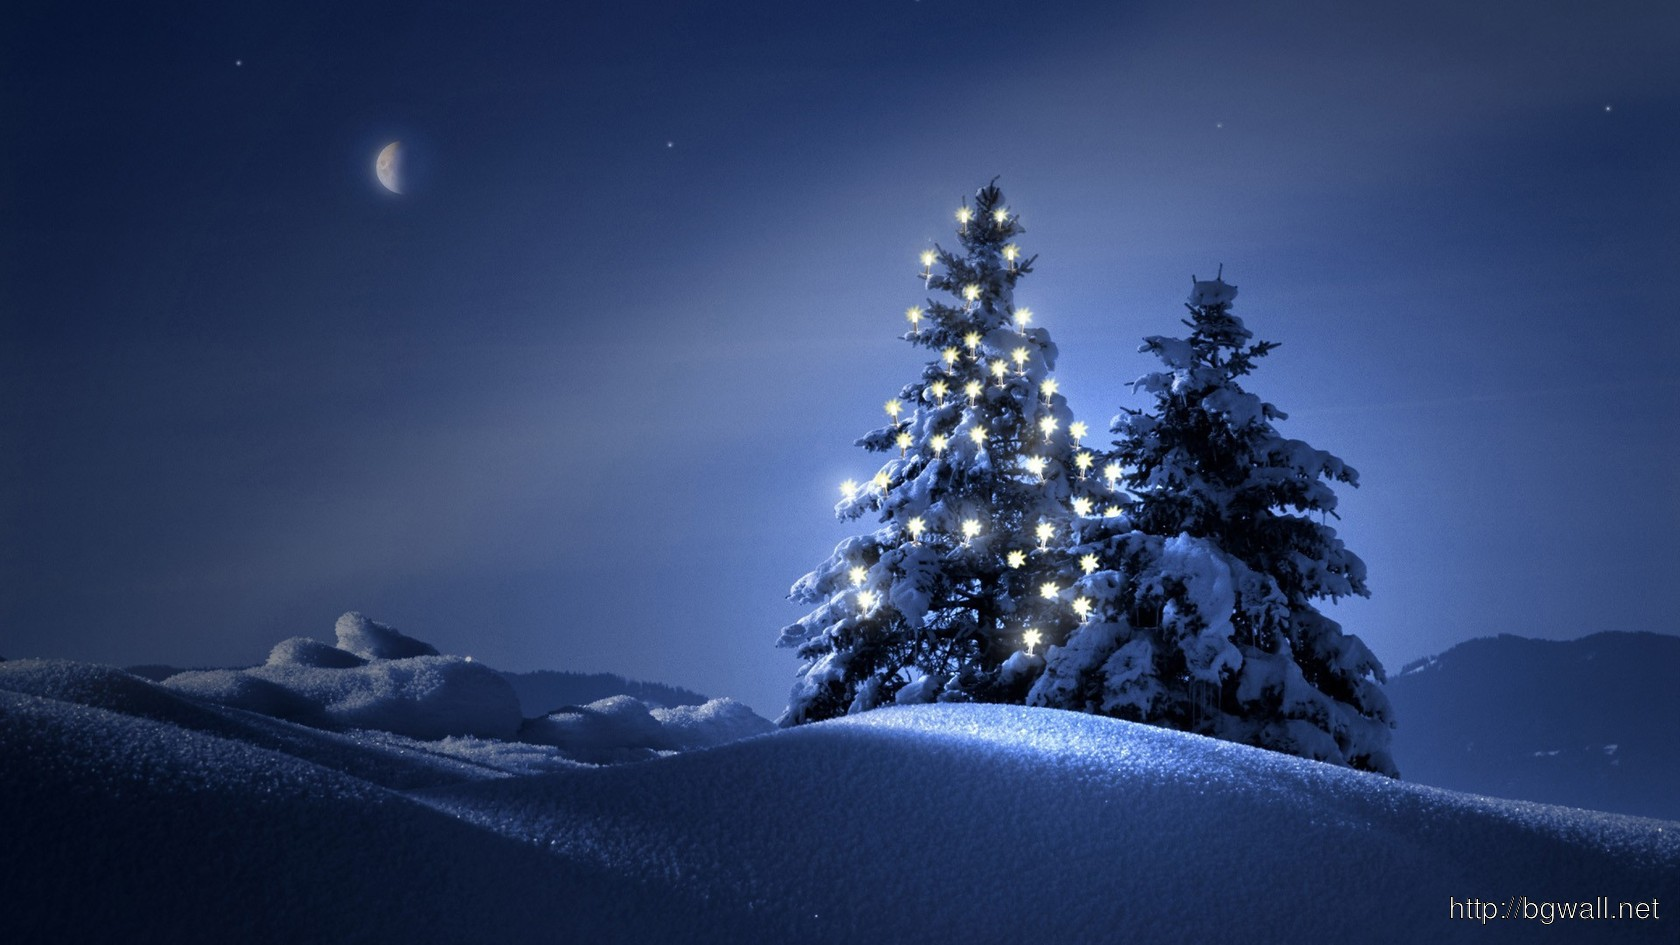 Christmas Trees In The Snow Wallpaper 4058 Full Size